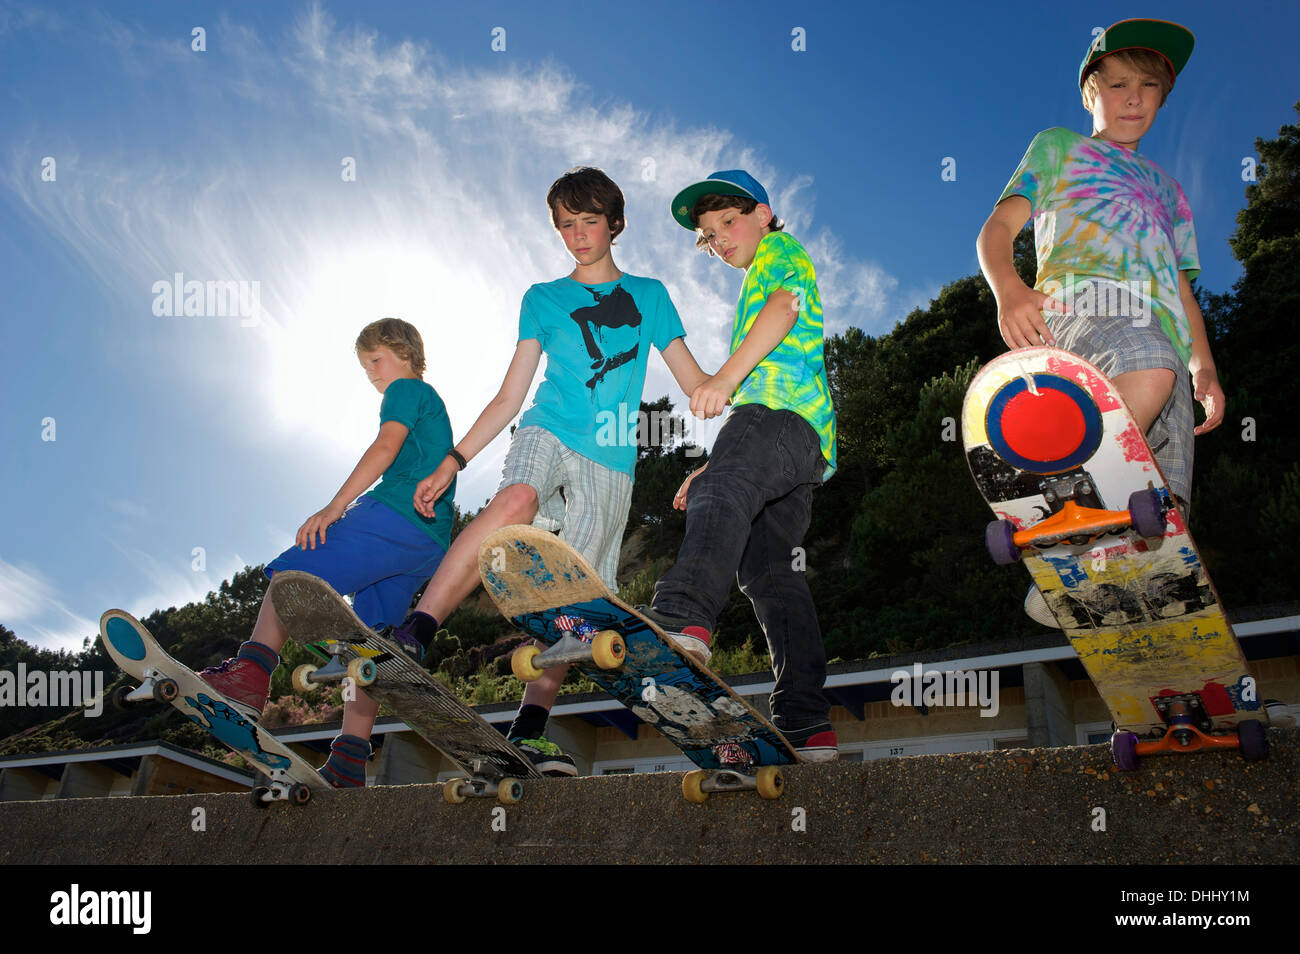 Portrait of four boys on skateboards - Stock Image